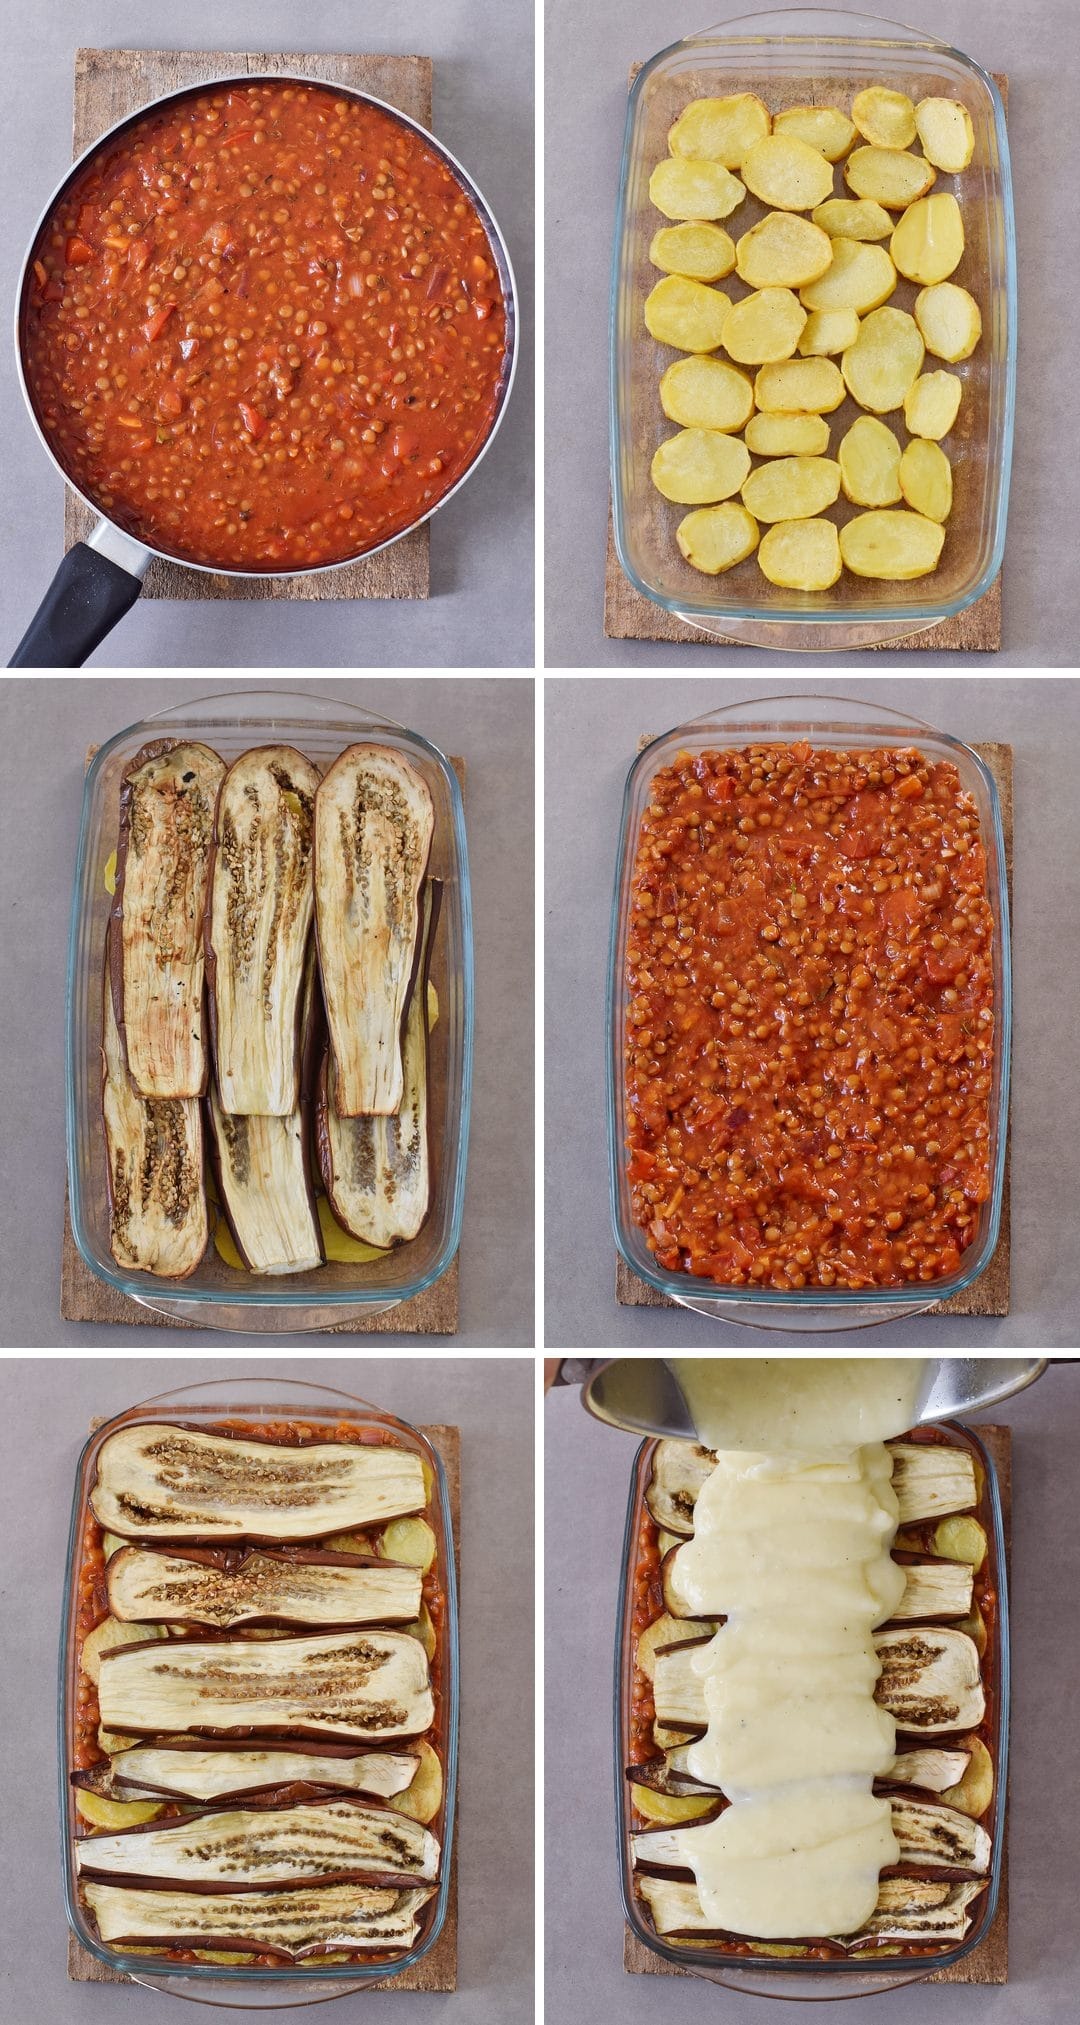 how to make vegan moussaka step by step pictures